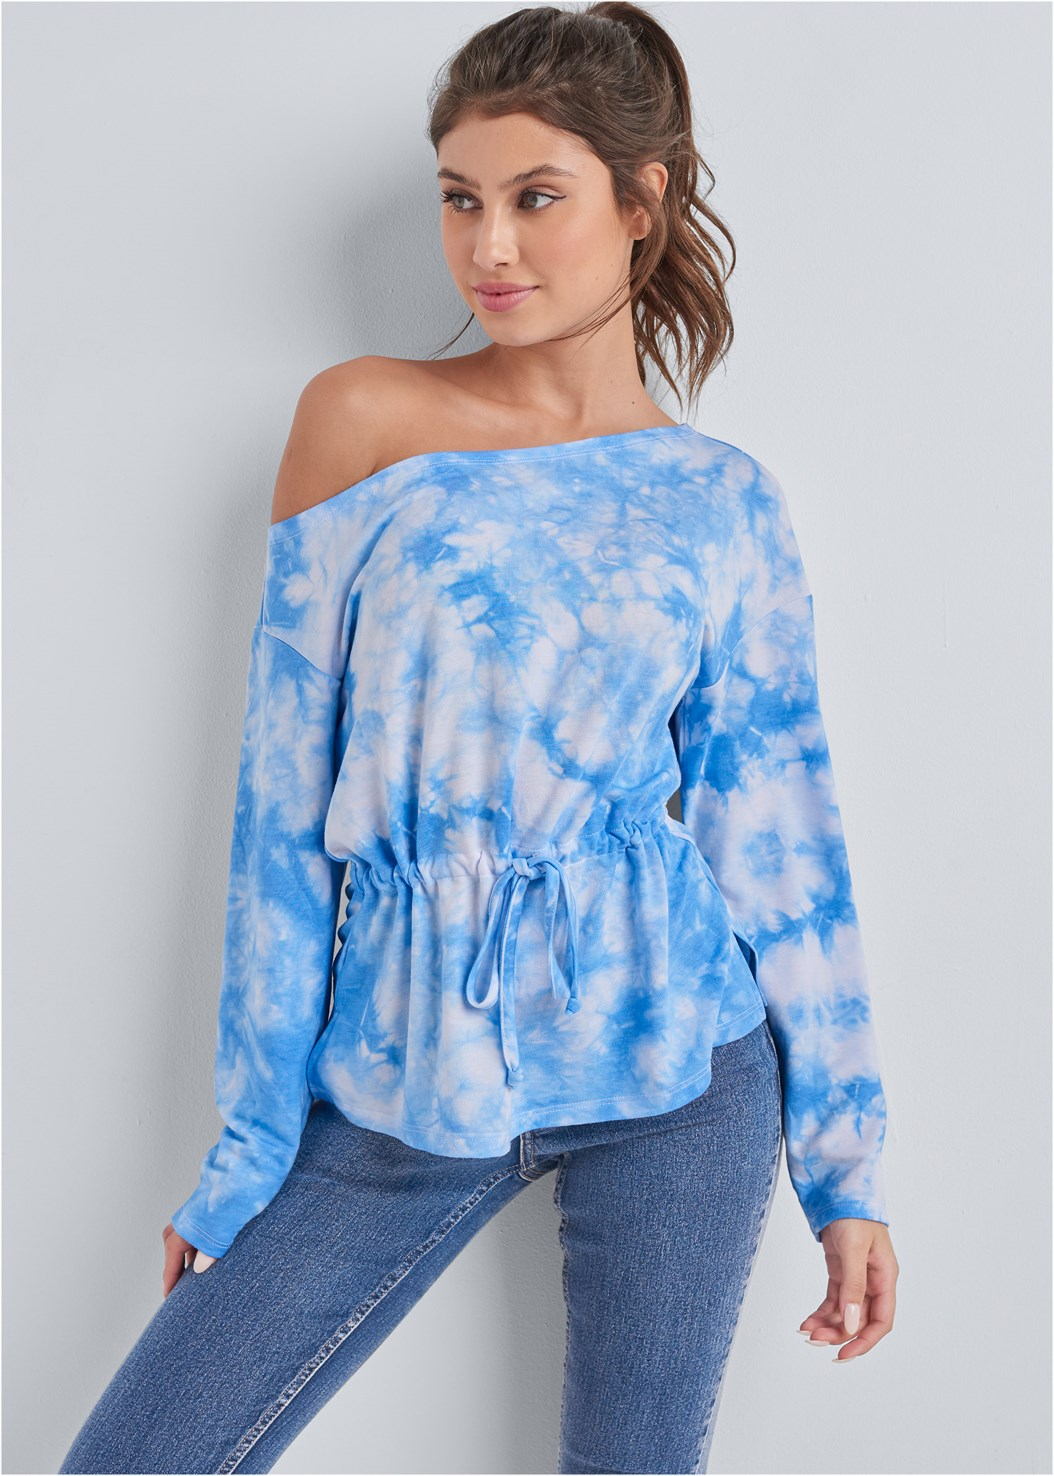 Mineral Wash Off Shoulder Sweatshirt,Mid Rise Color Skinny Jeans,Strapless Bra With Geo Lace,Embellished Striped Sneaker